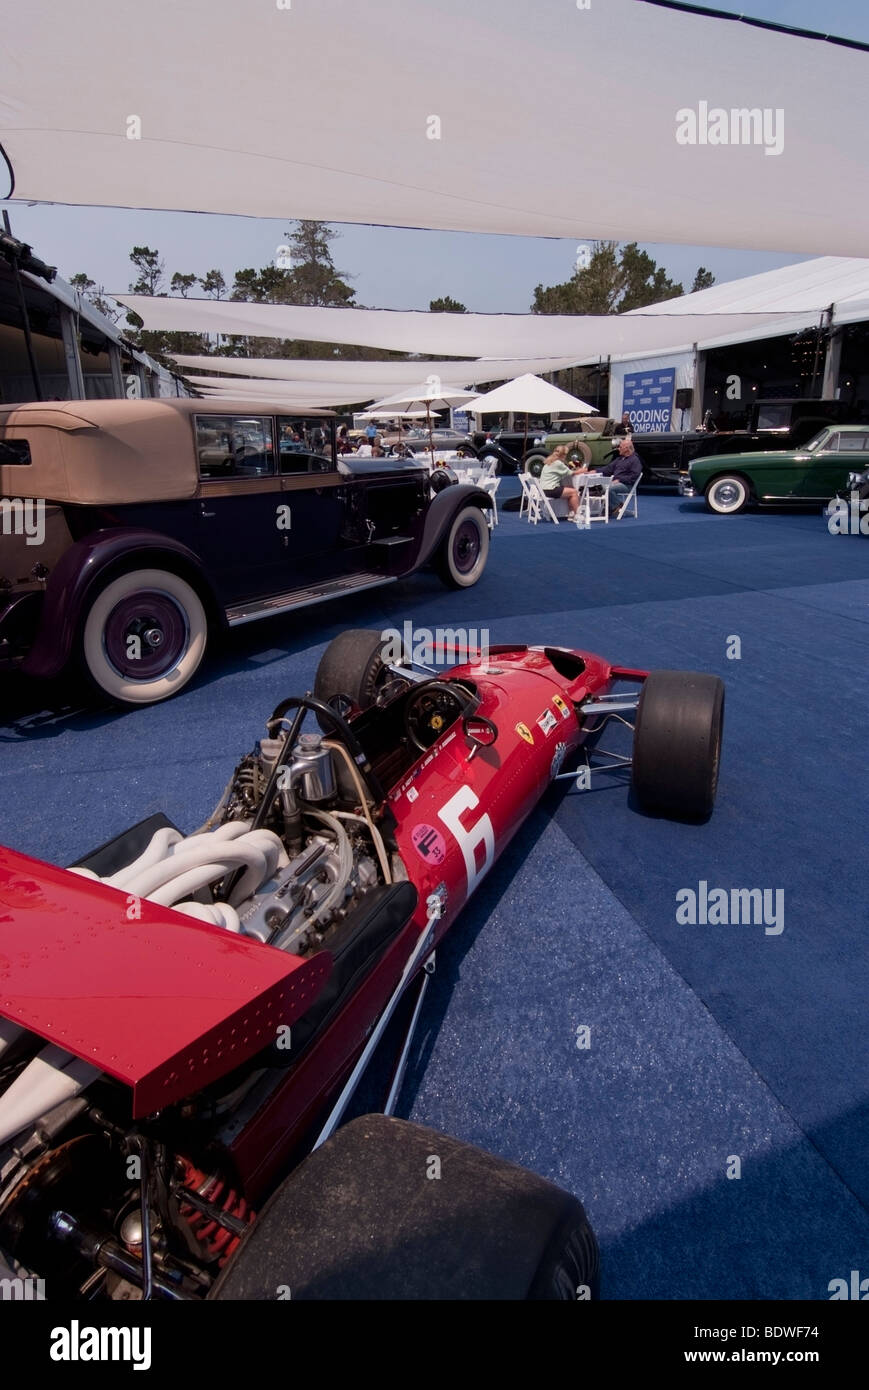 1969 Ferrari 312 Formula One race car outside of the Gooding & Company tent at the 2009 Pebble Beach Concours - Stock Image